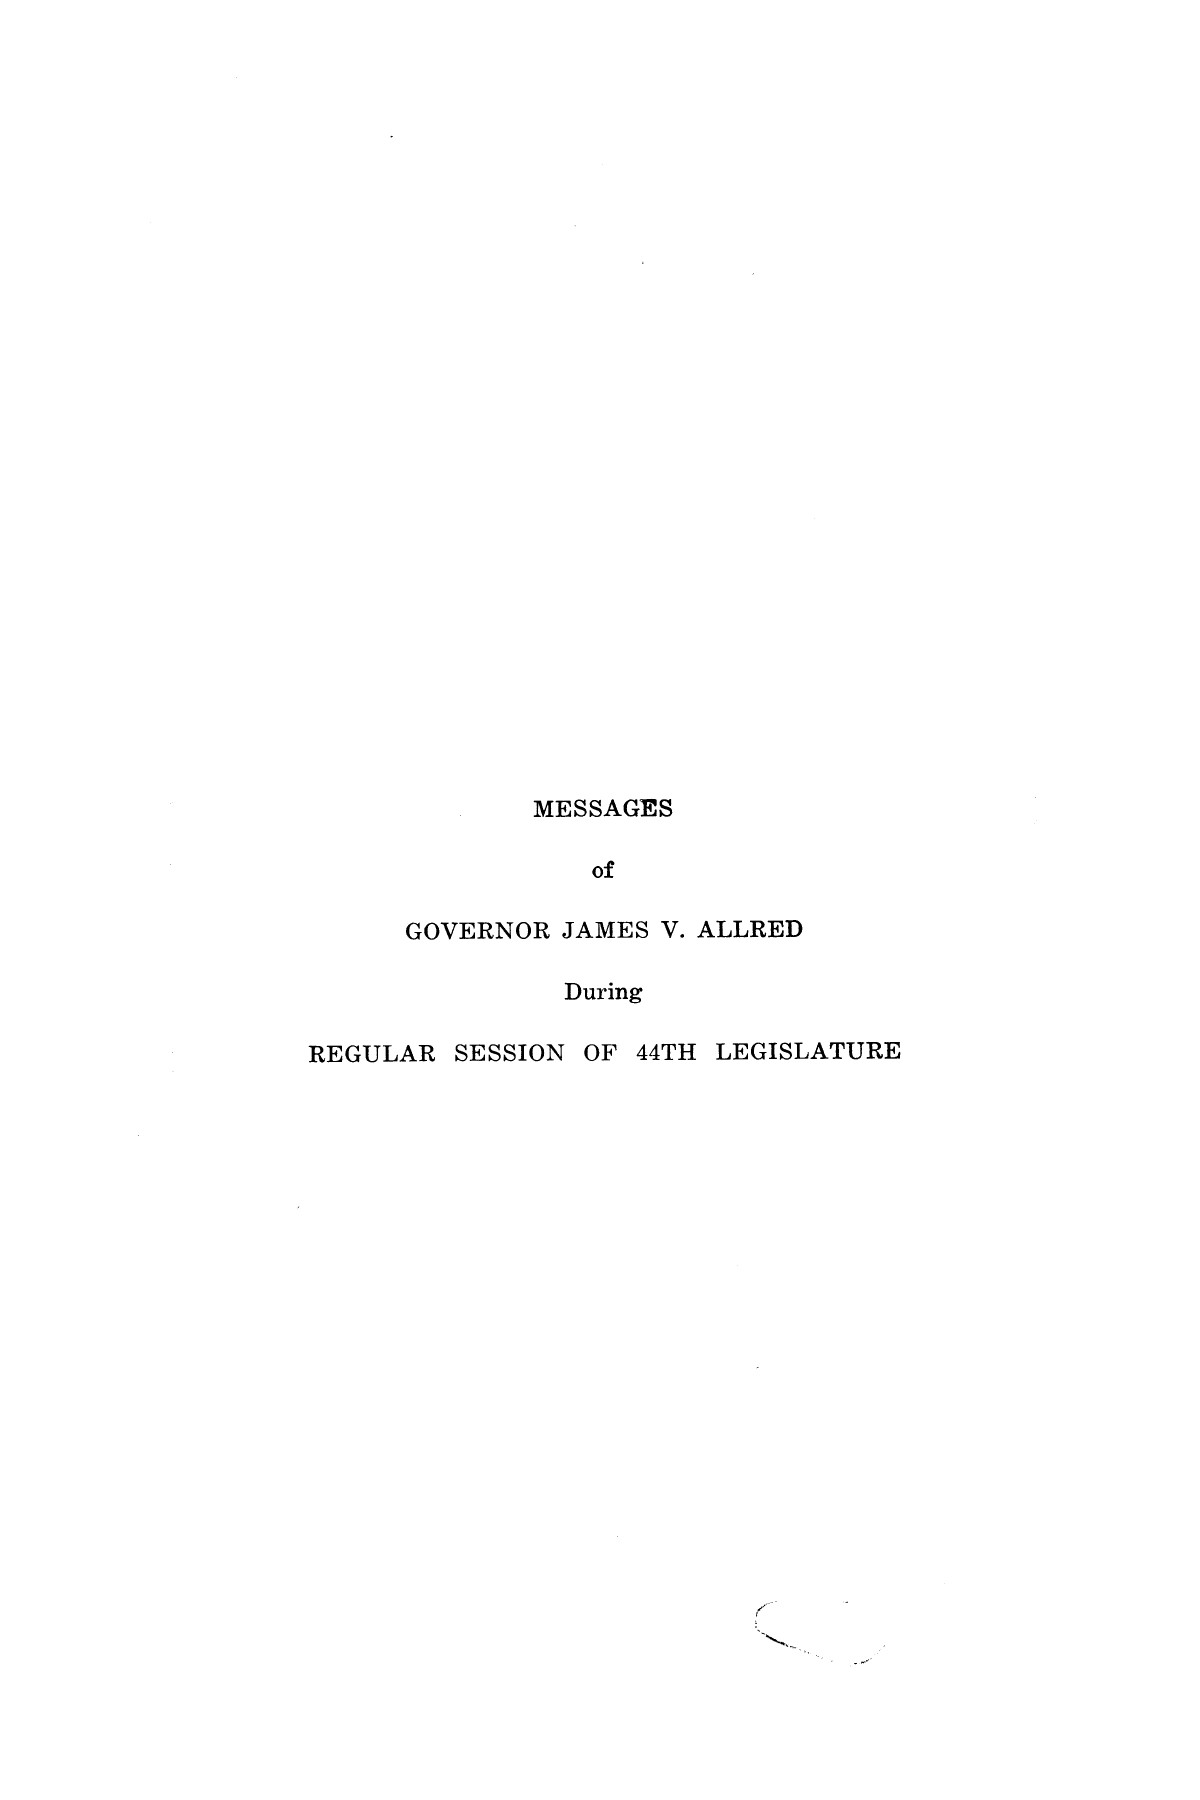 Legislative Messages of Hon. James V. Allred, Governor of Texas 1935-1939                                                                                                      [Sequence #]: 4 of 263